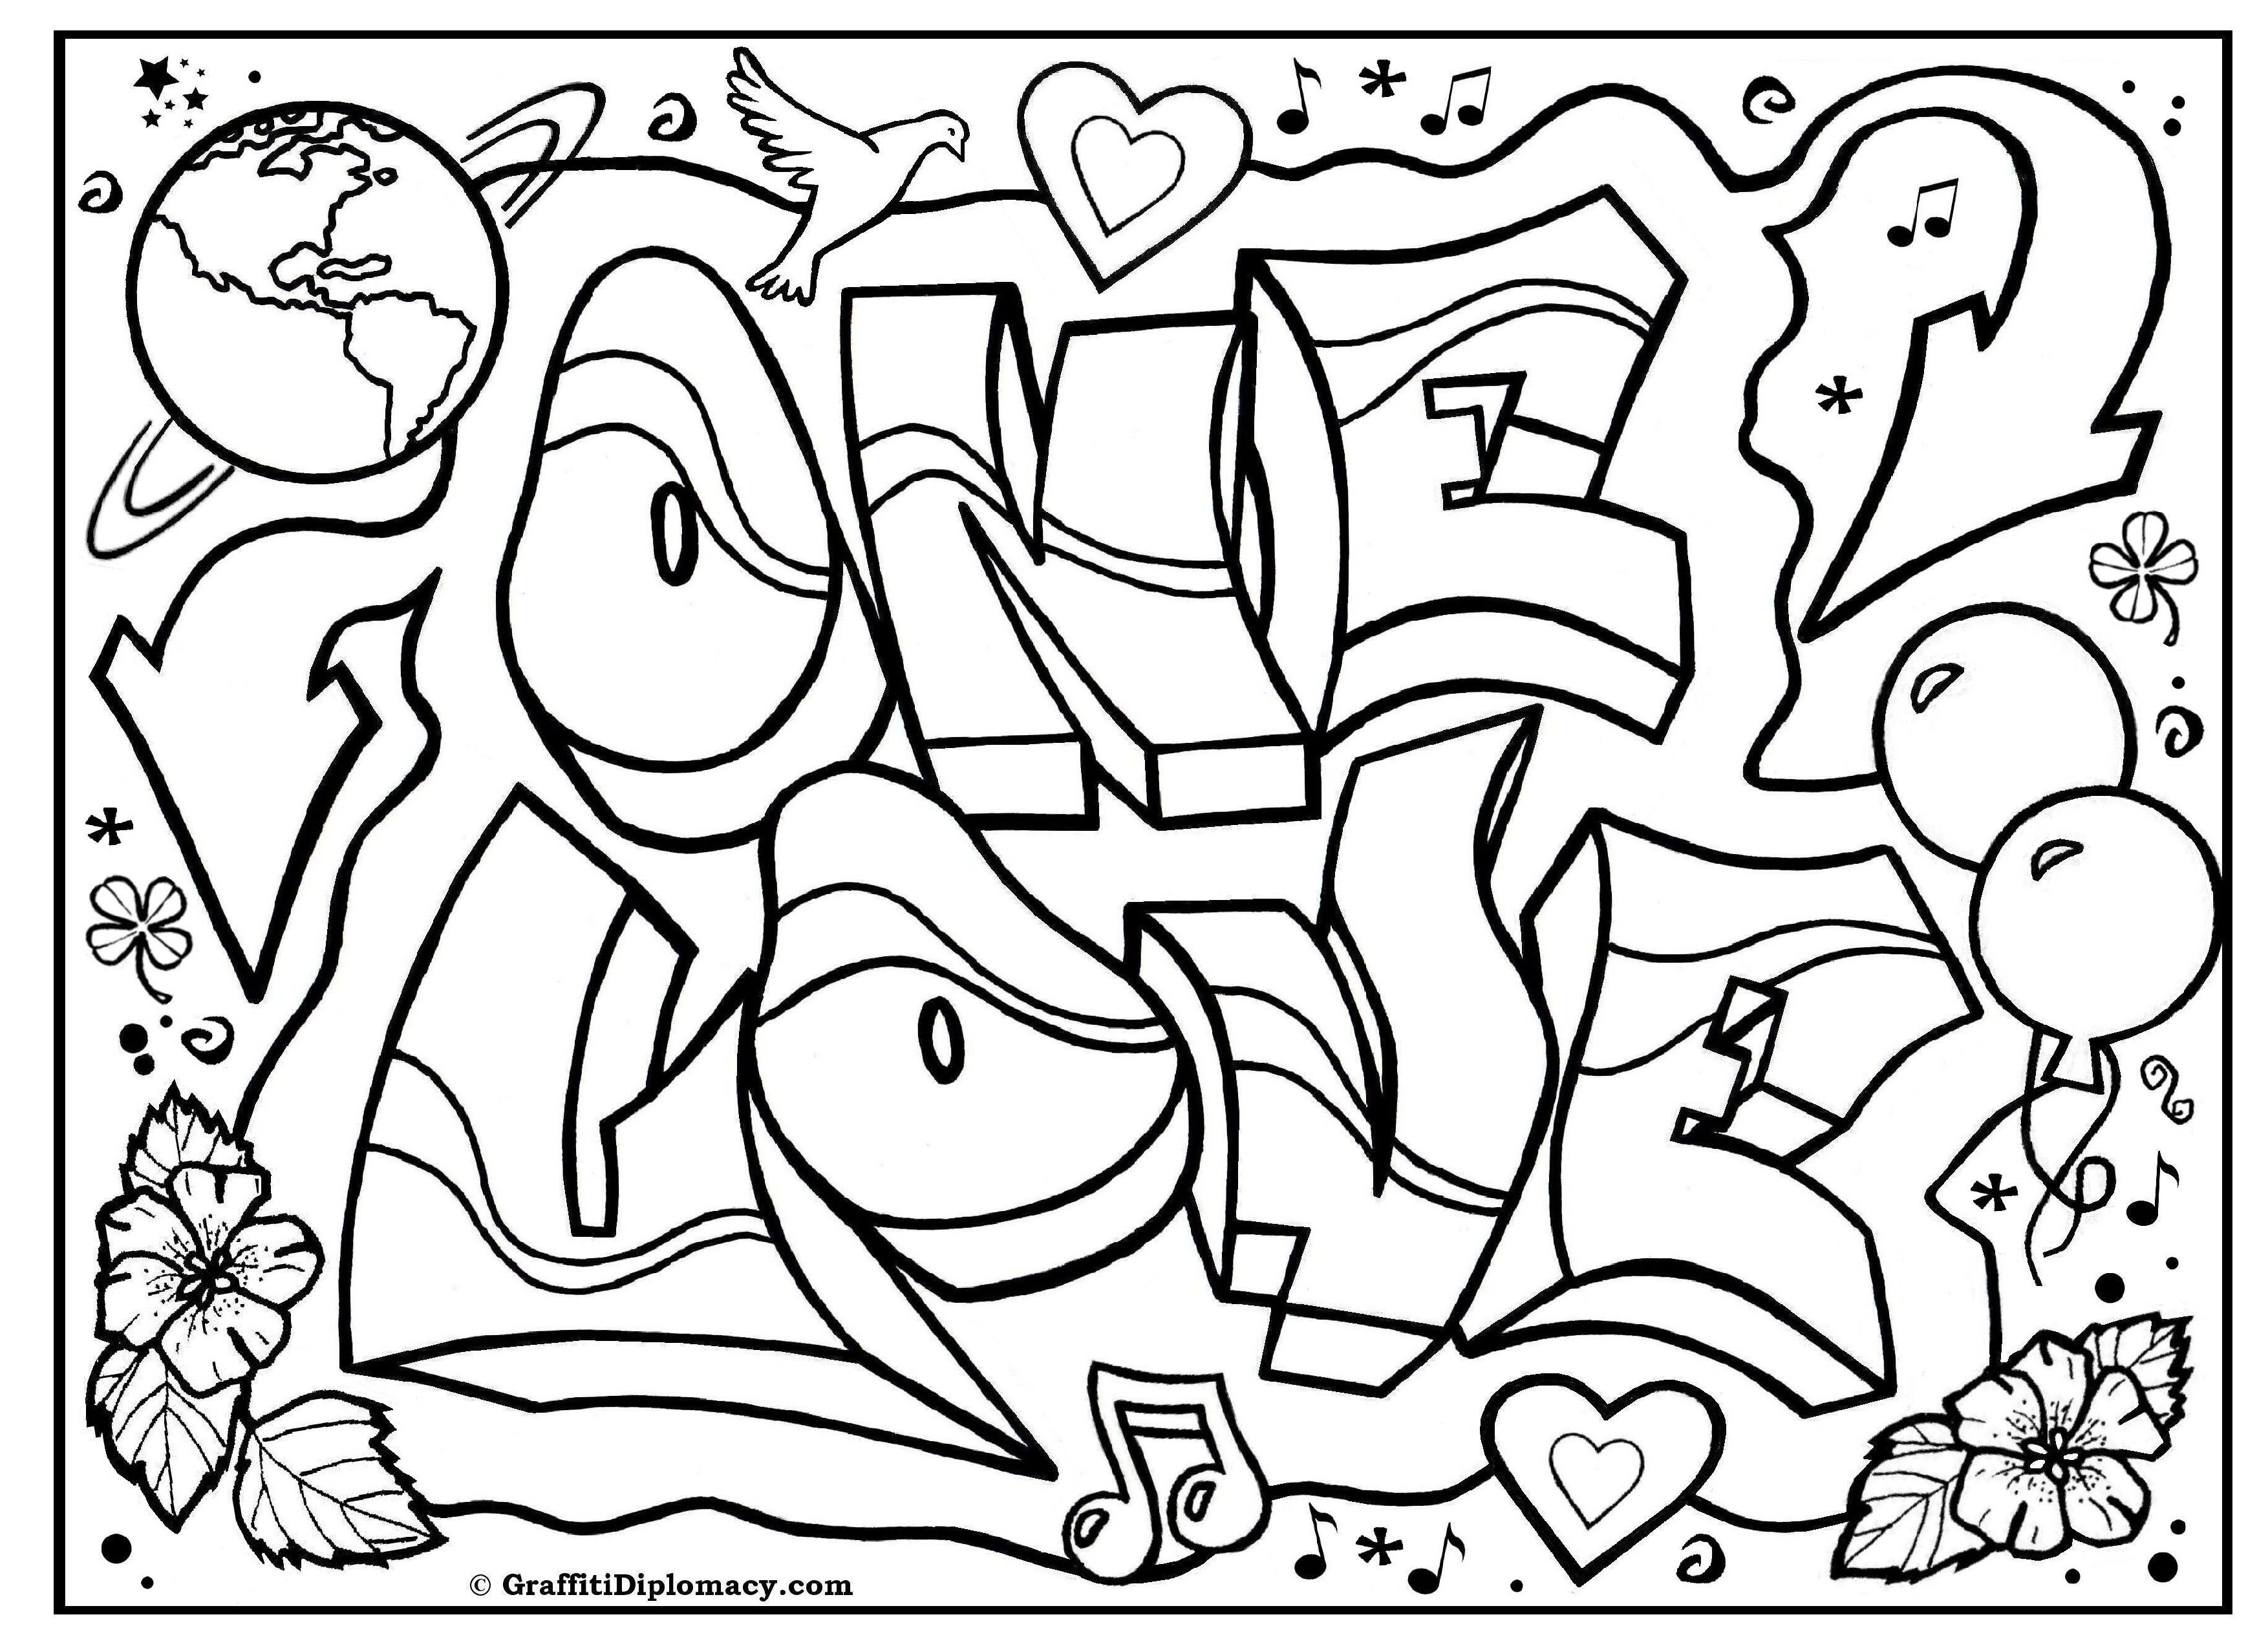 3508x2552 Printable One Love Graffiti Free Coloring Page Graffiti Printable